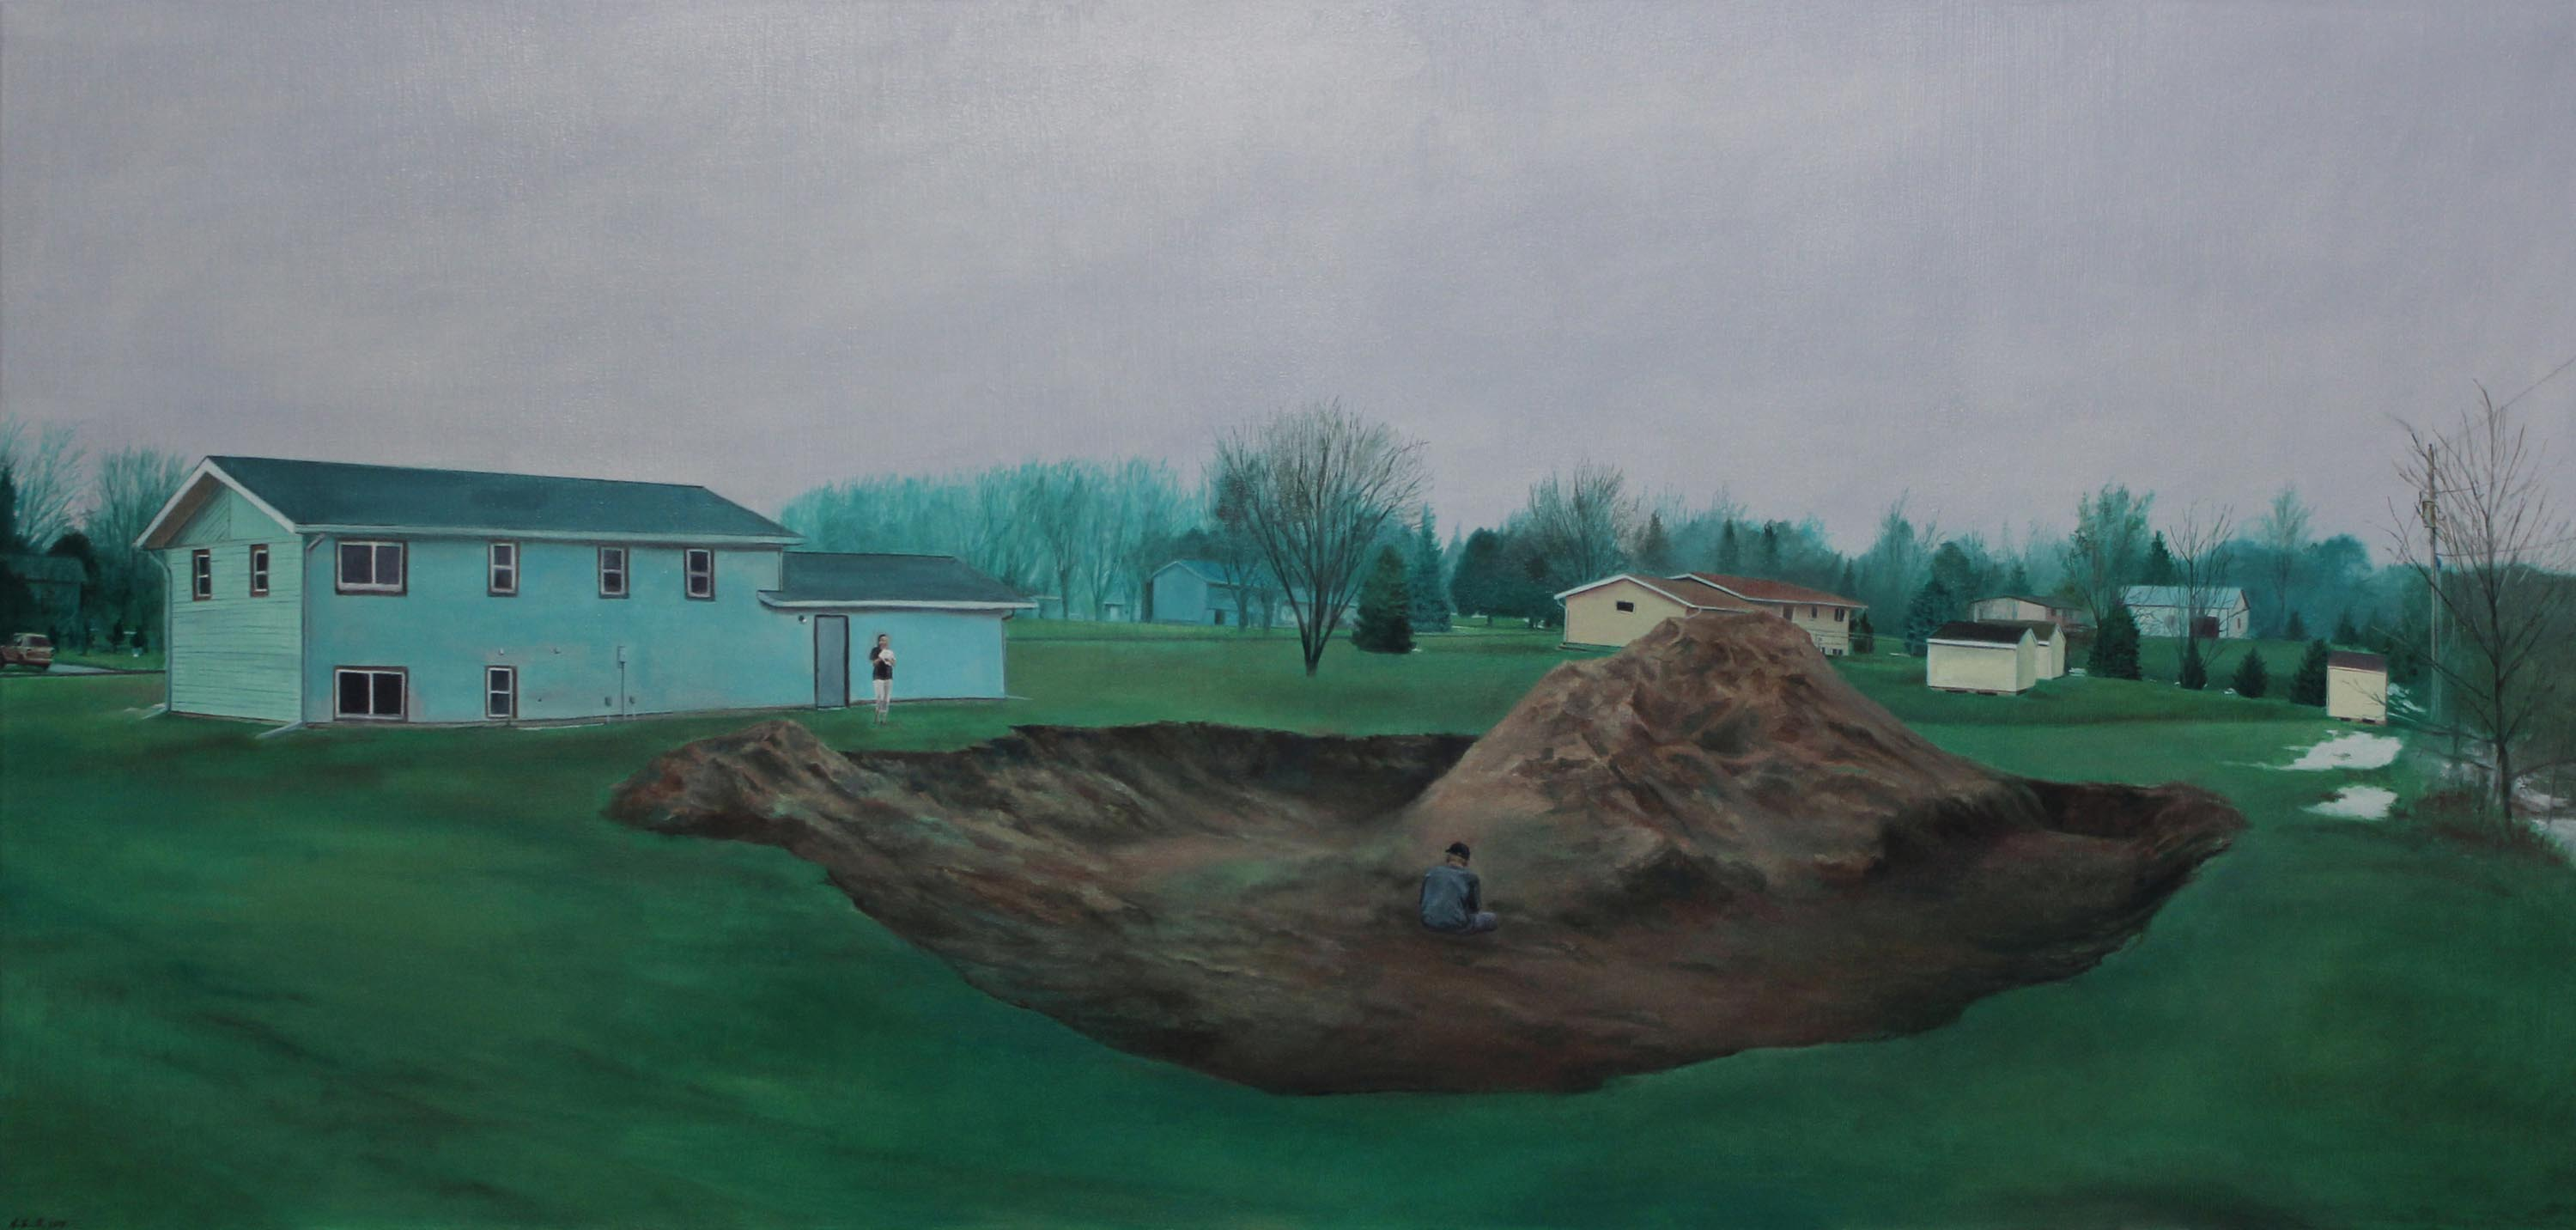 Title: Stearns County, Minnesota Year: 2013 Medium: Oil on Canvas Dimensions: 24 x 50 inches